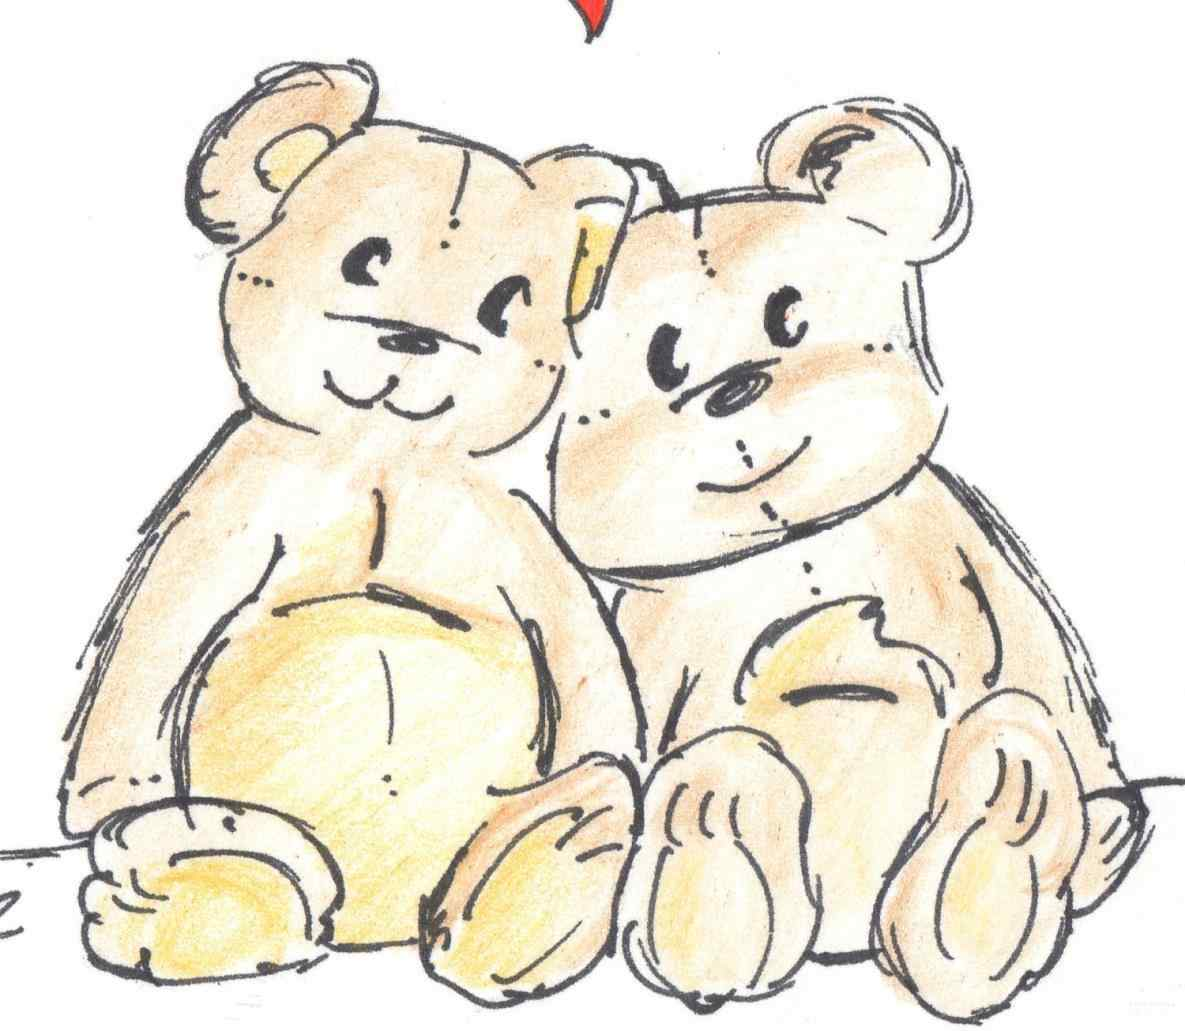 1185x1031 Teddy Bears With Hearts And Roses Drawing Your Meme Source